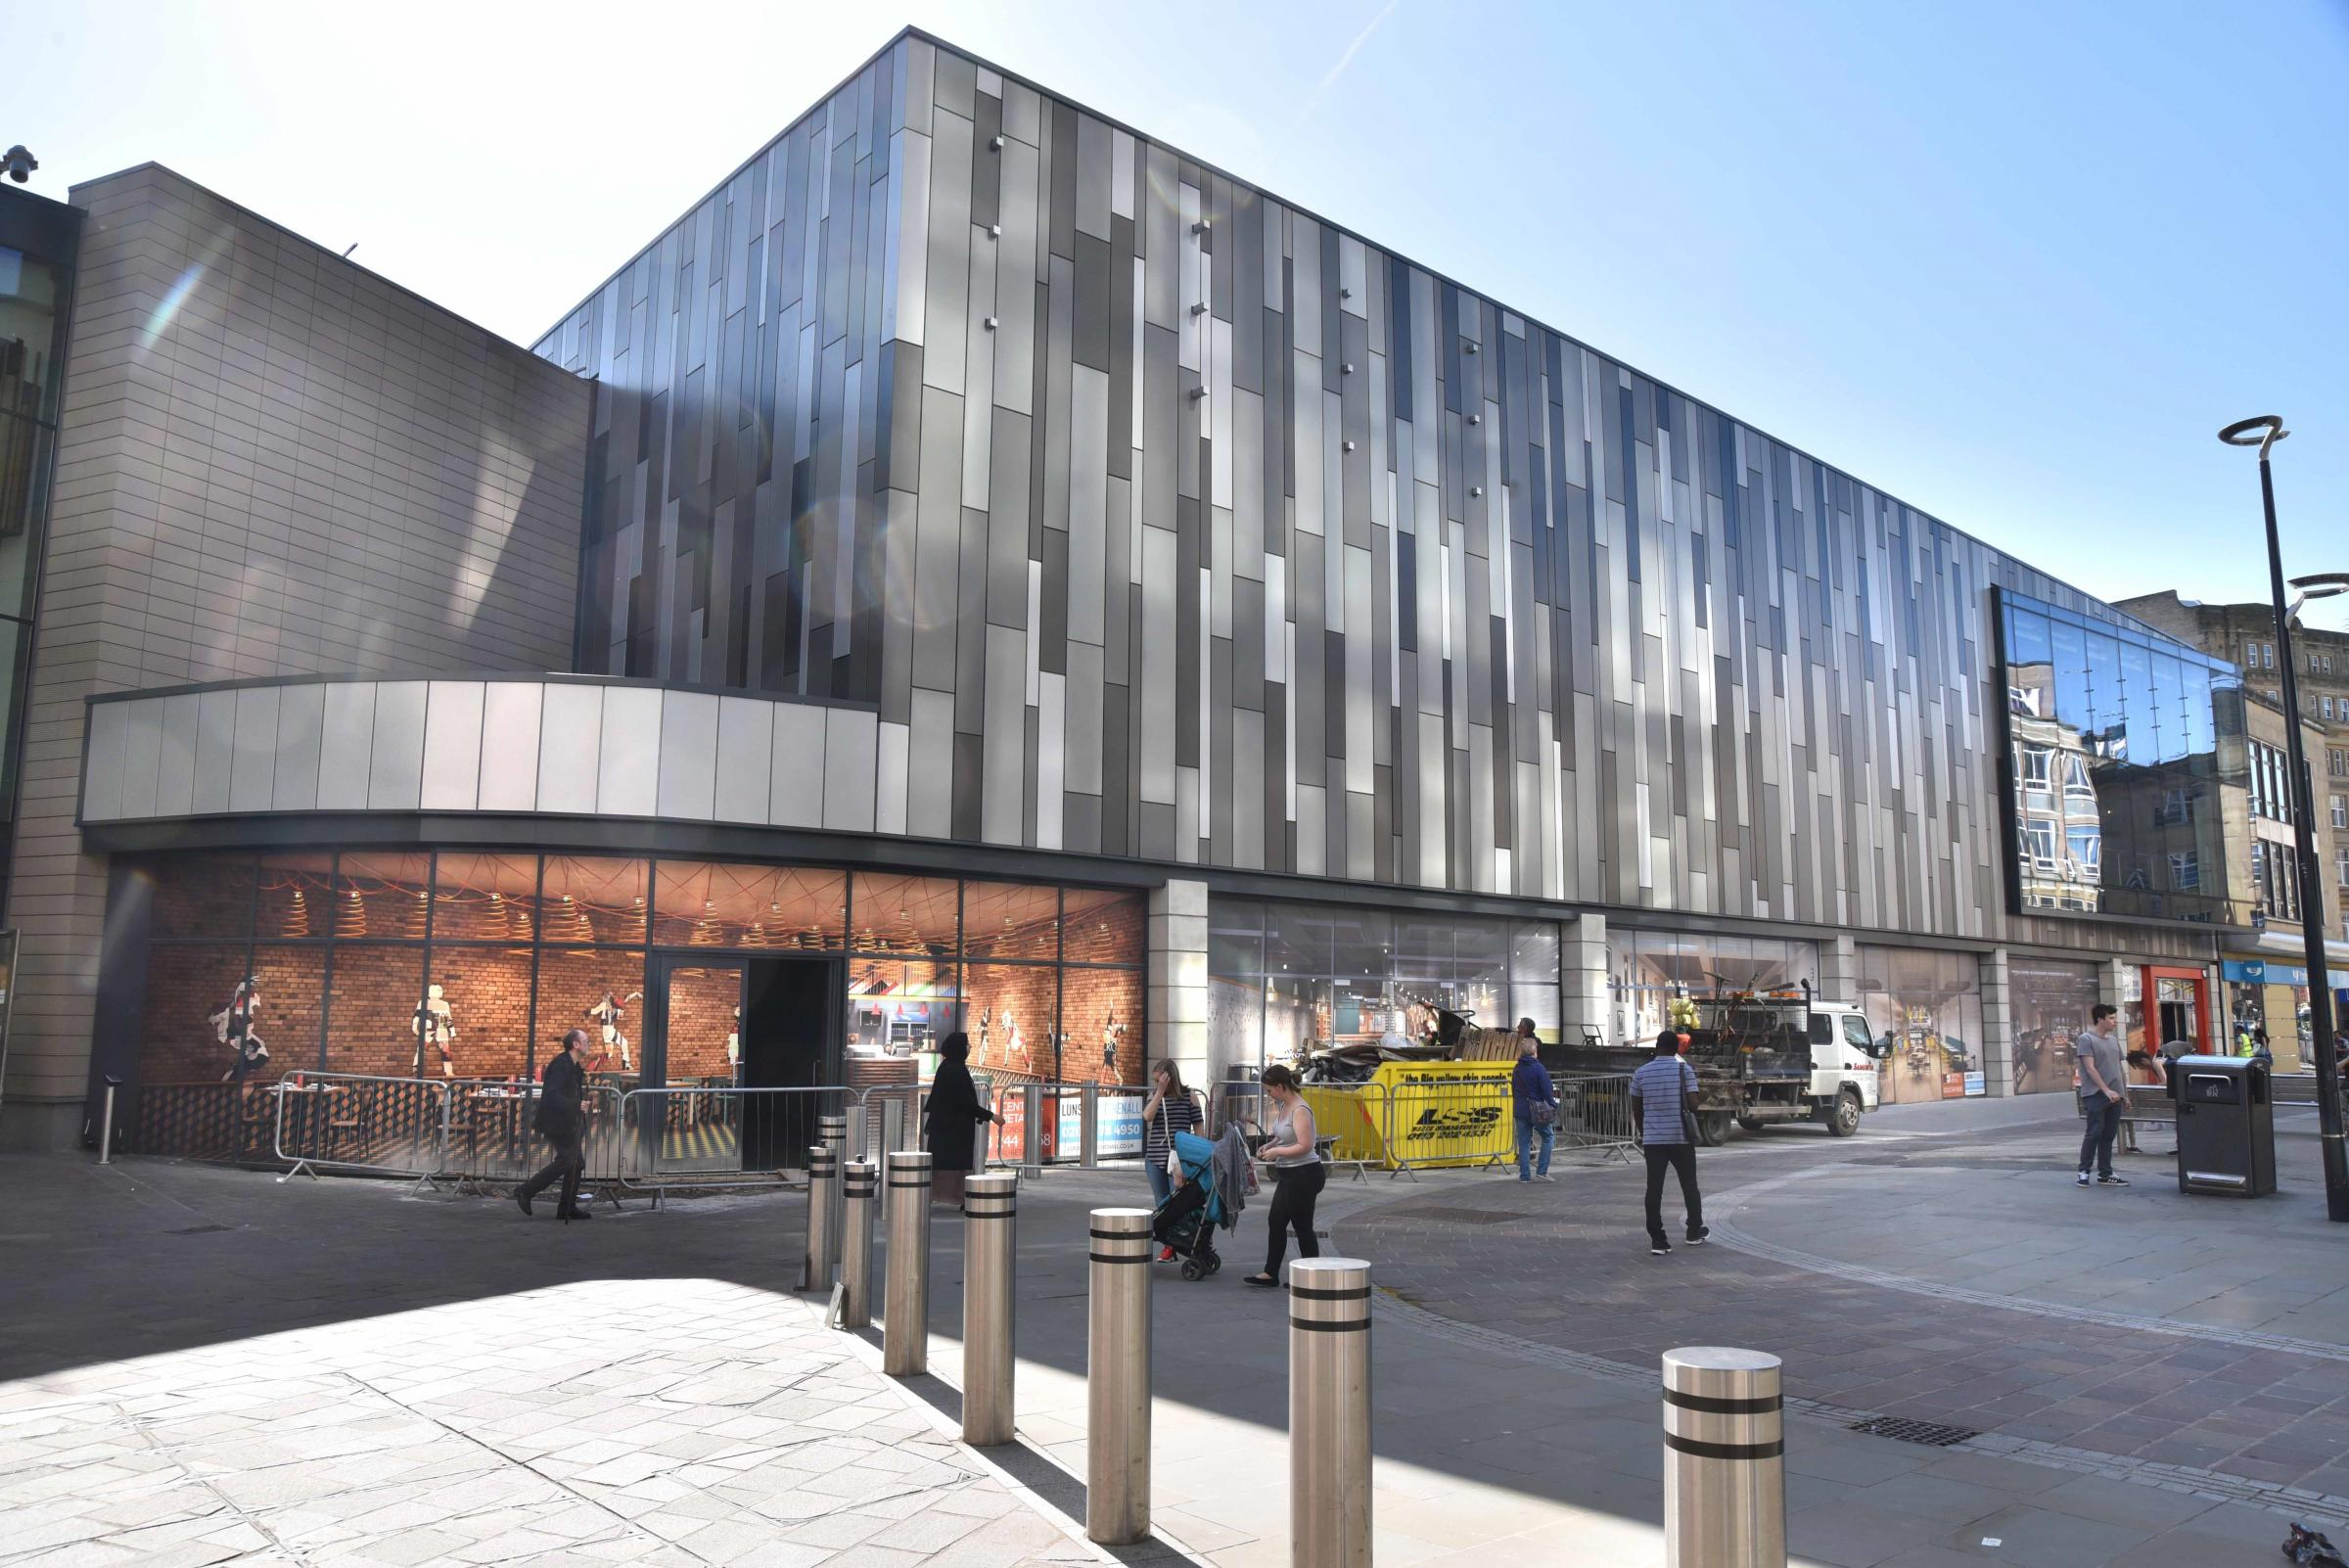 An opening date has been announced for The Light cinema in Bradford city centre